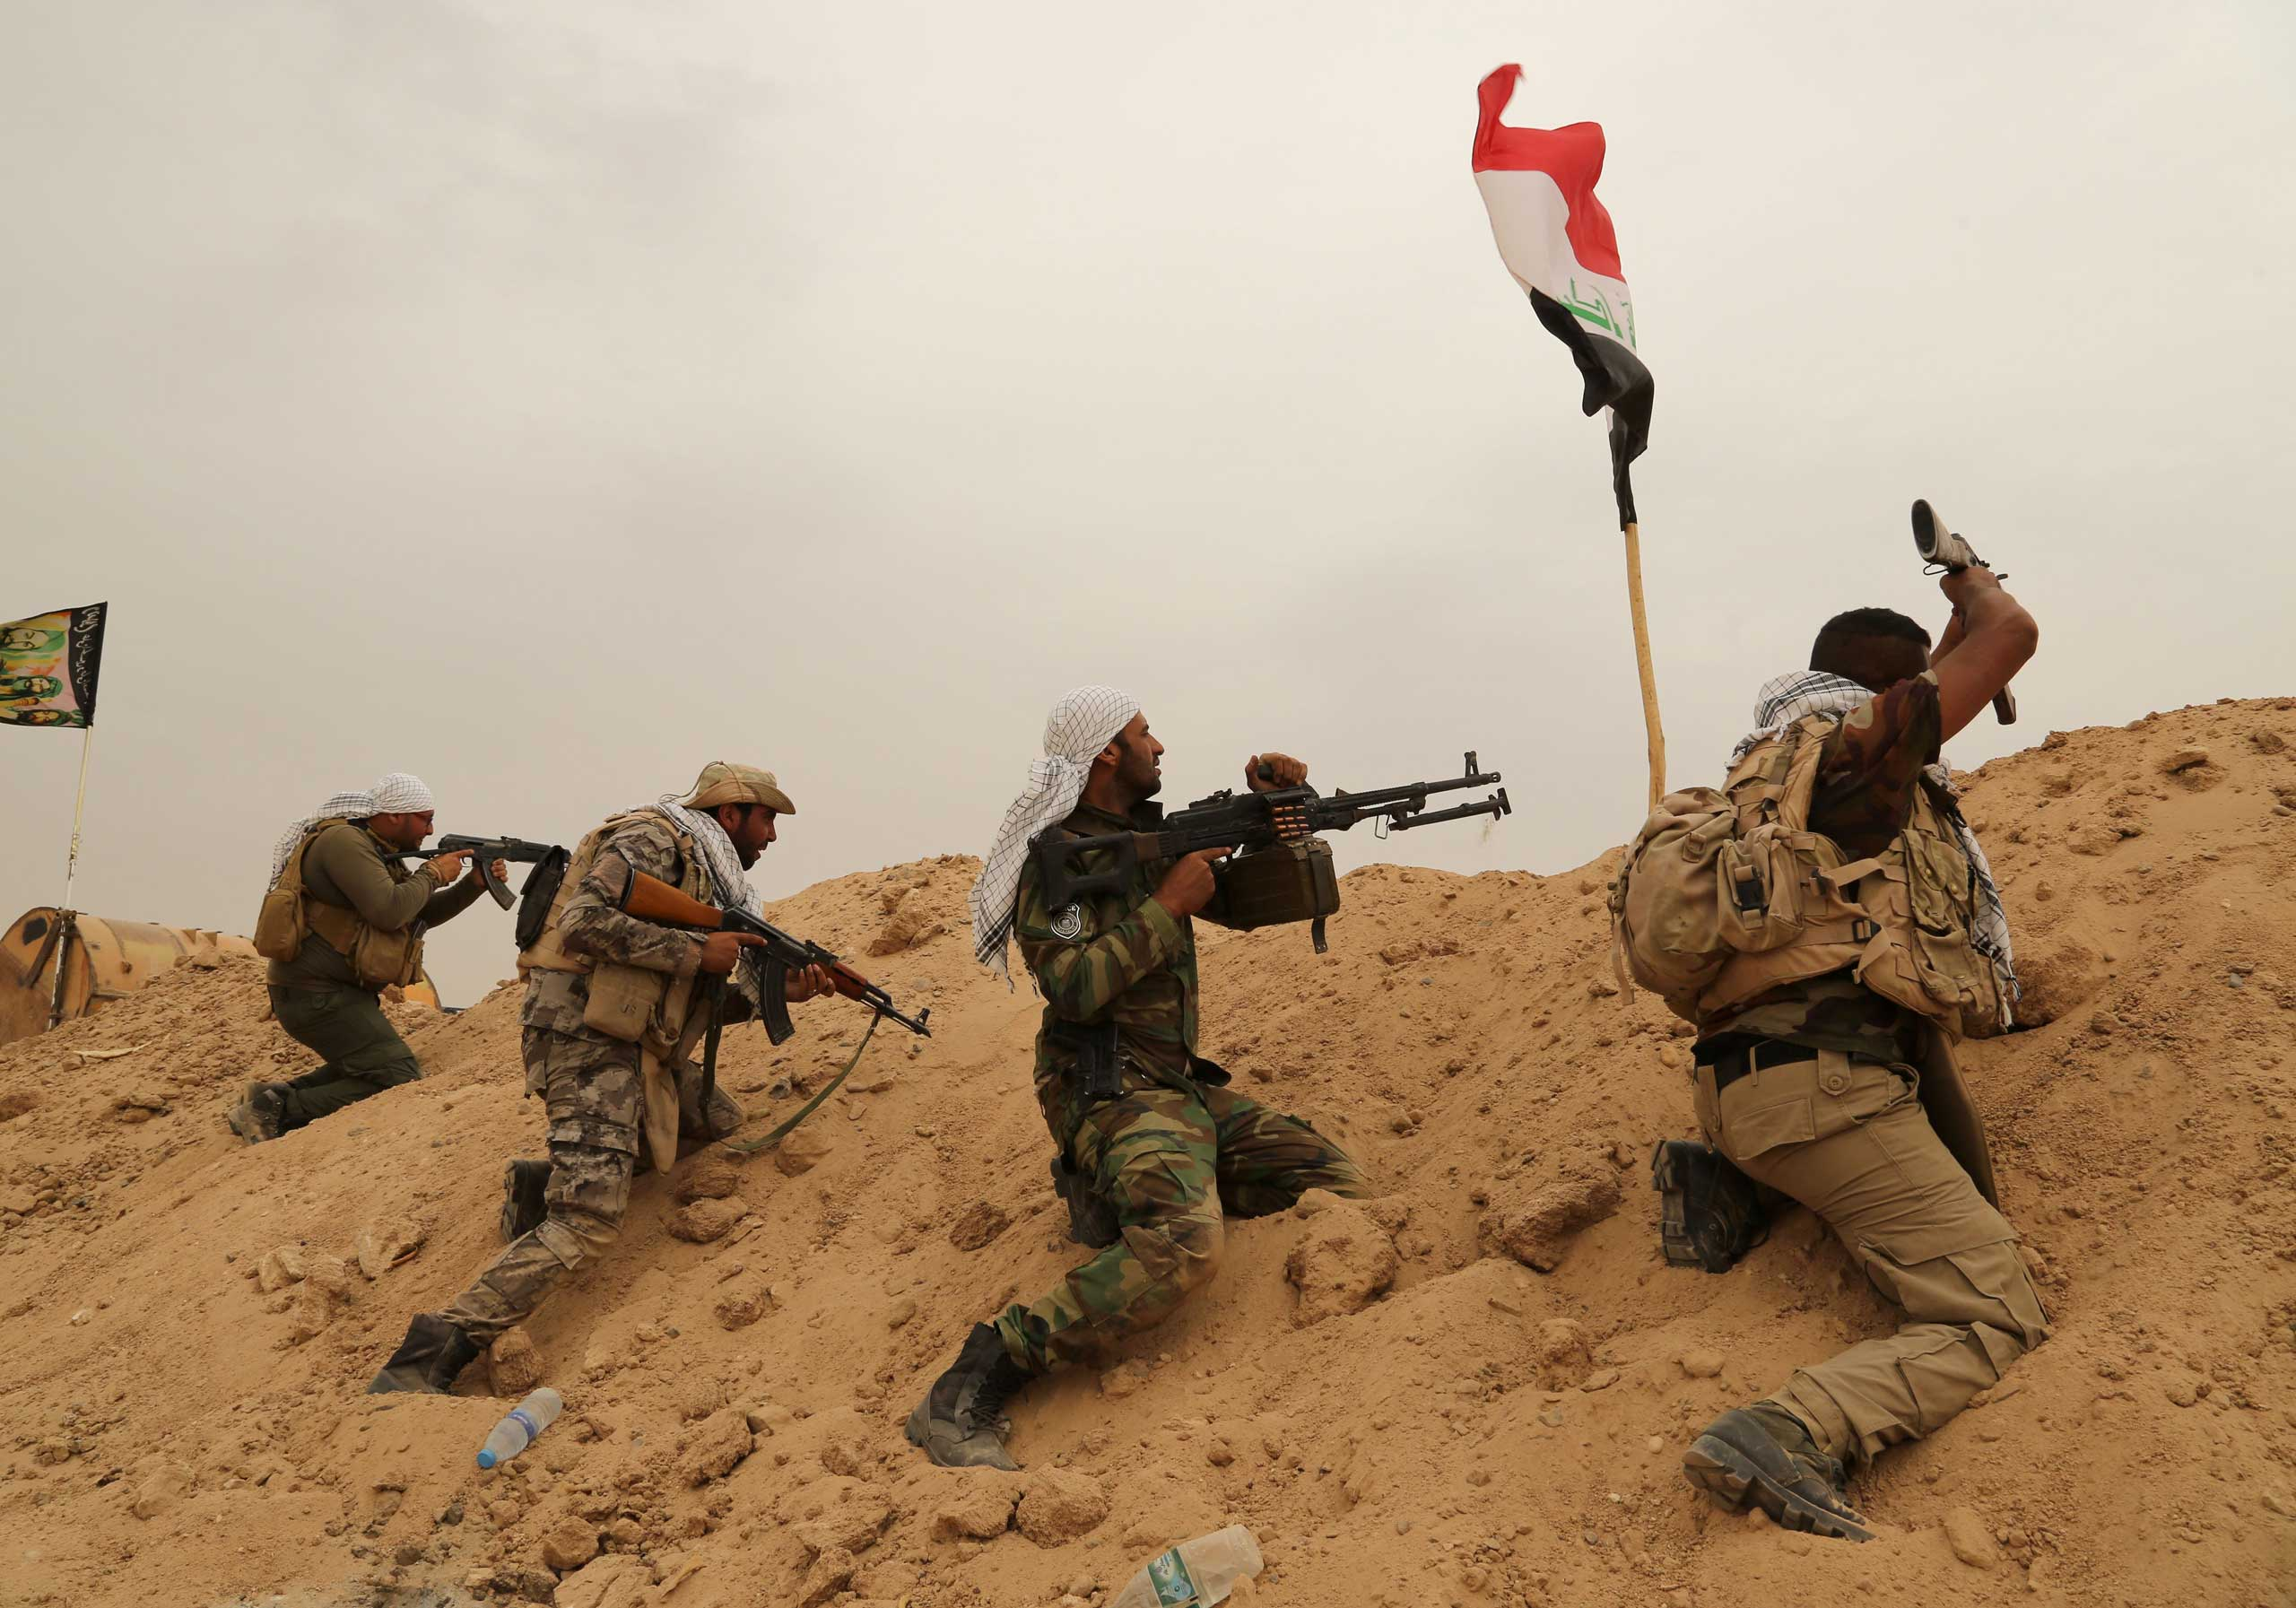 Fighters from Badr Brigades Shiite militia clash with Islamic State group militants at the front line on the outskirts of Fallujah, Anbar province, Iraq on June 1, 2015.